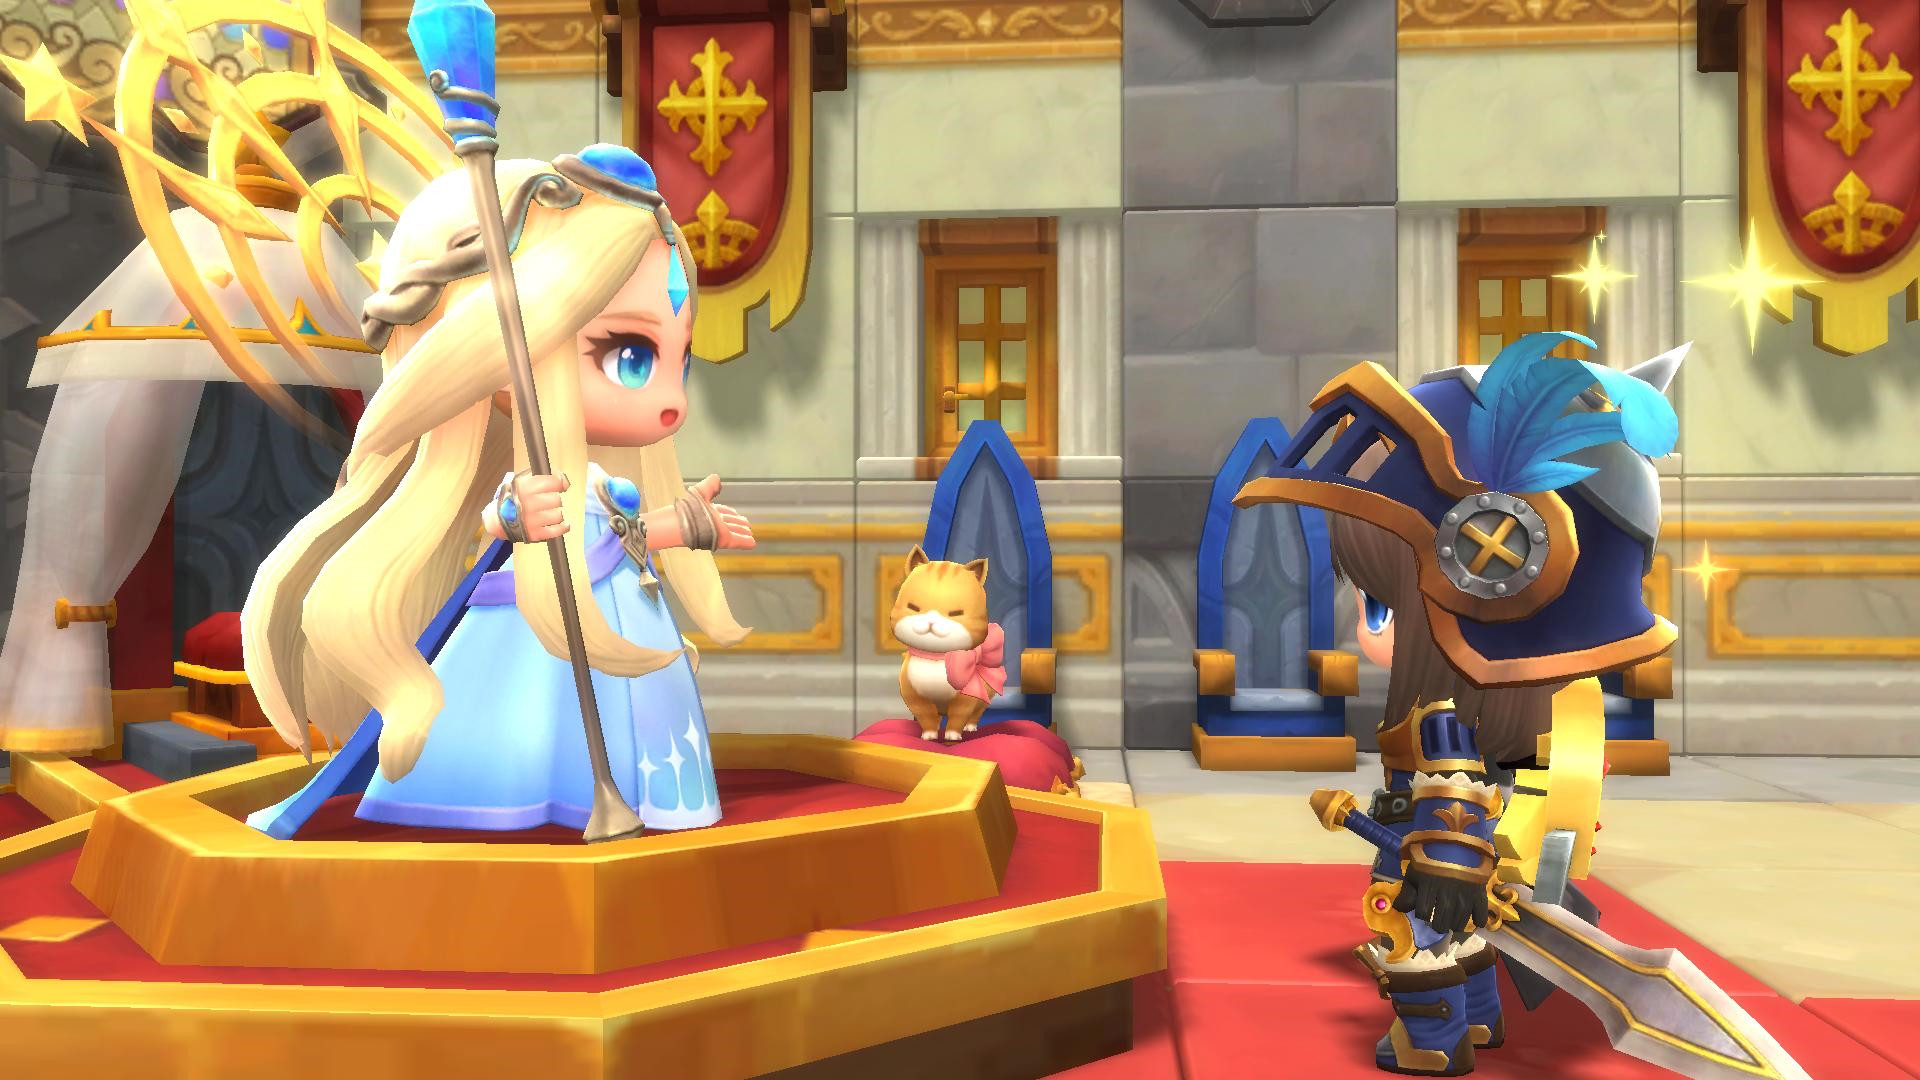 MapleStory 2 for PC Reviews - OpenCritic